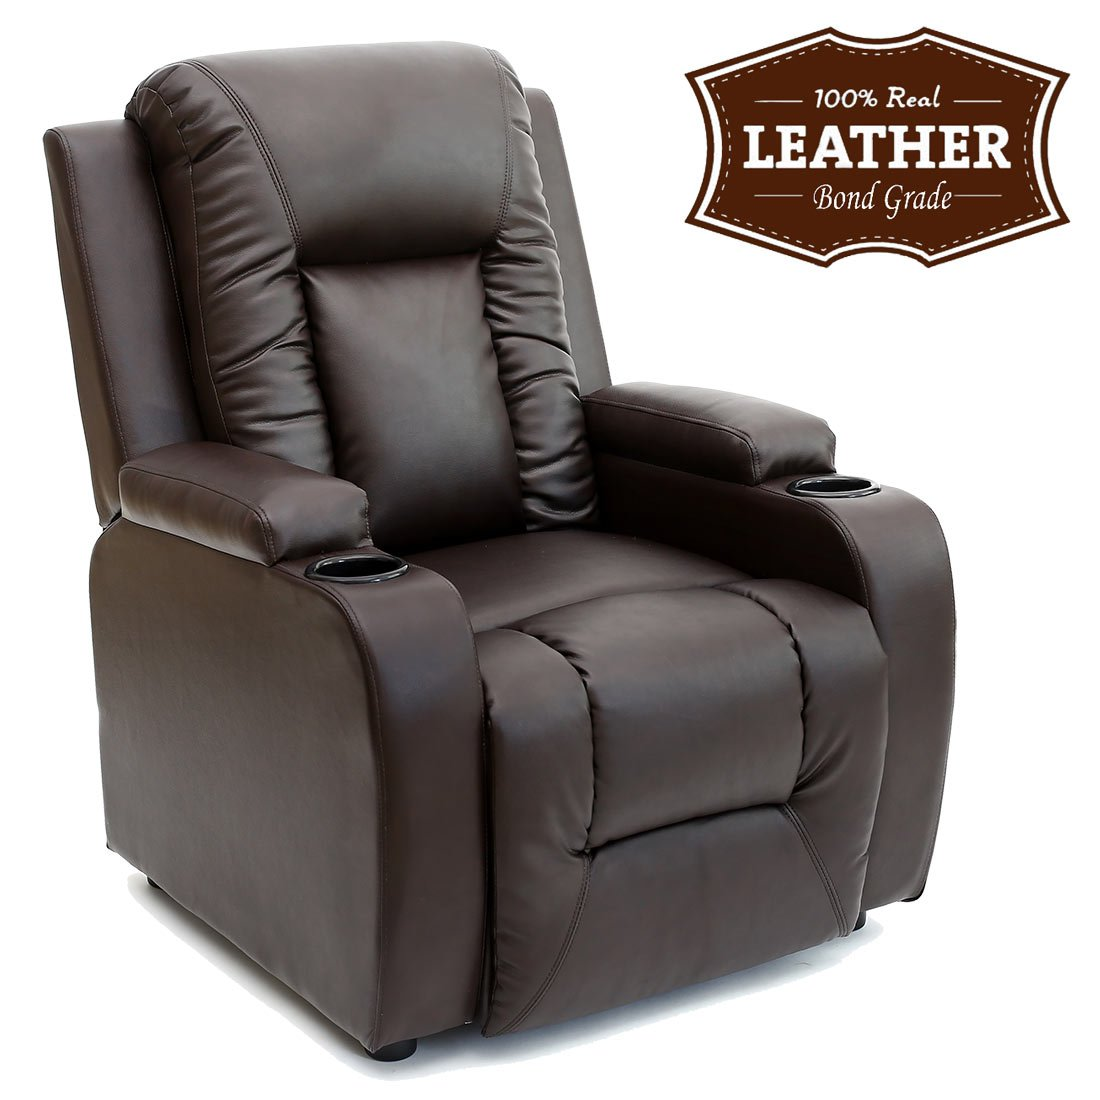 loon umberger simmons furniture by upholstery recliners pdx powell peak cuddlier reviews recliner